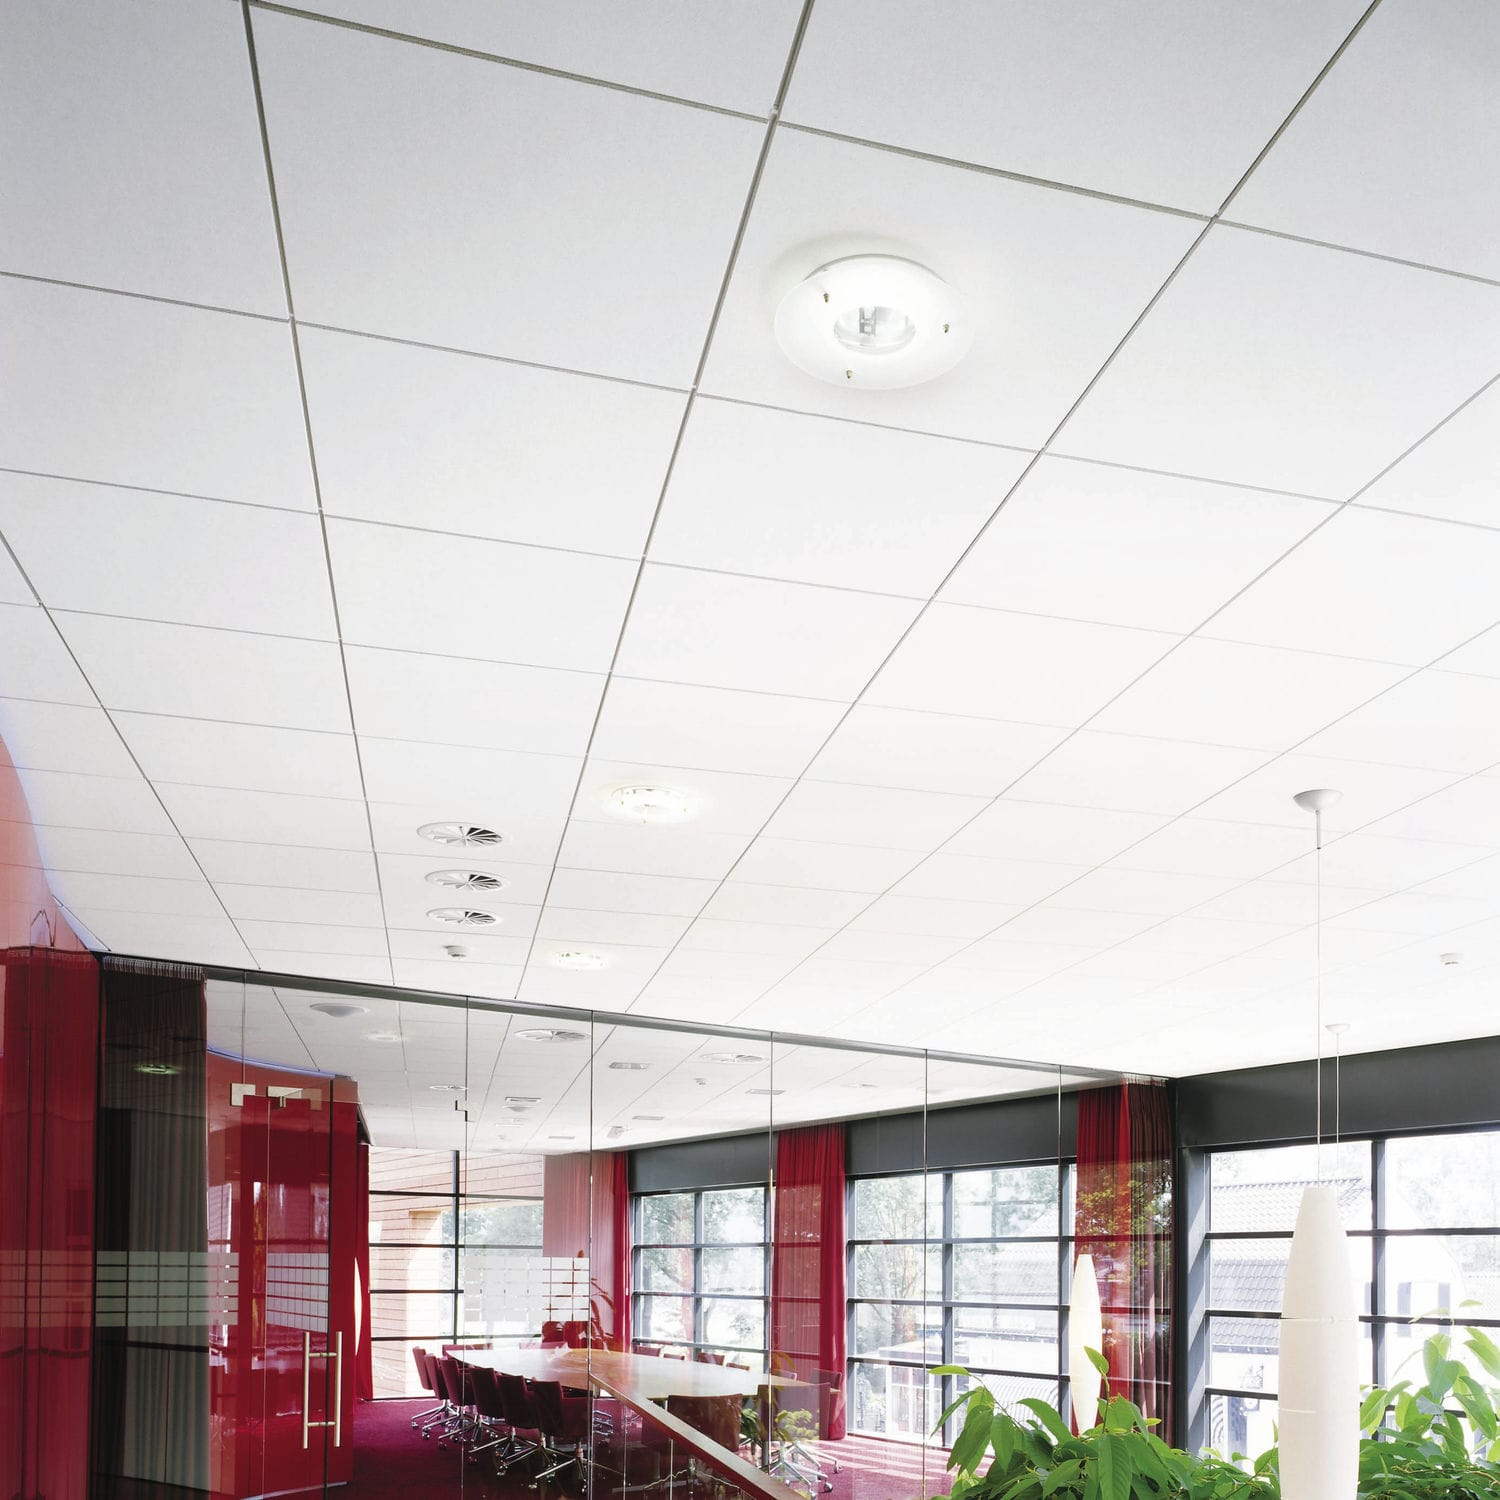 Mineral fiber suspended ceiling tile acoustic ultima mineral fiber suspended ceiling tile acoustic ultima dailygadgetfo Image collections